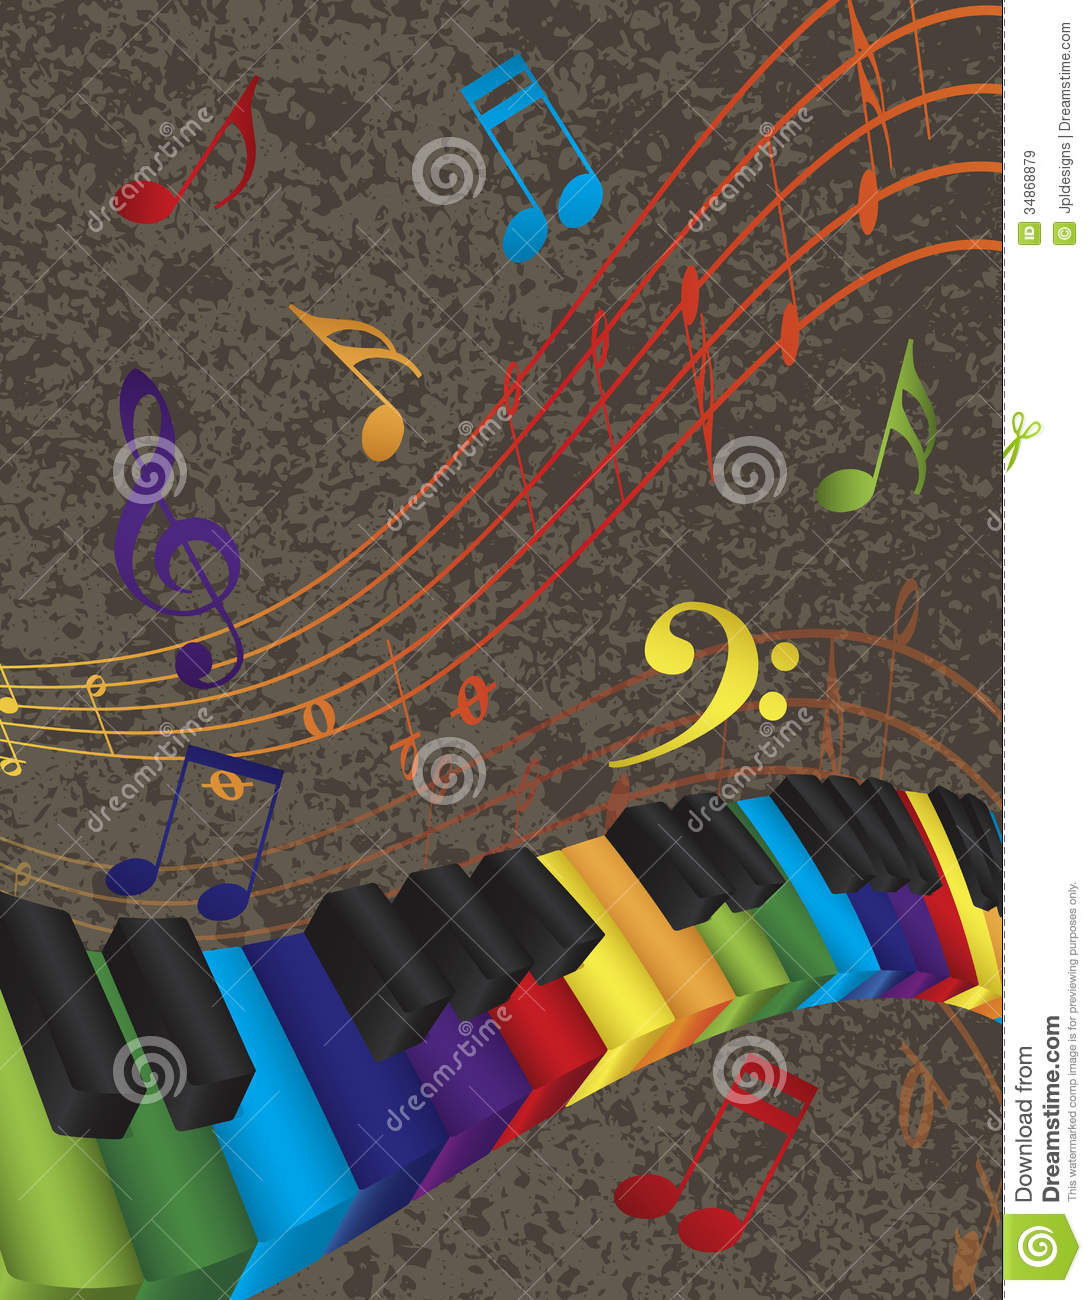 Musical Wallpaper Borders: Piano Wavy Border With 3D Colorful Keys And Music Stock